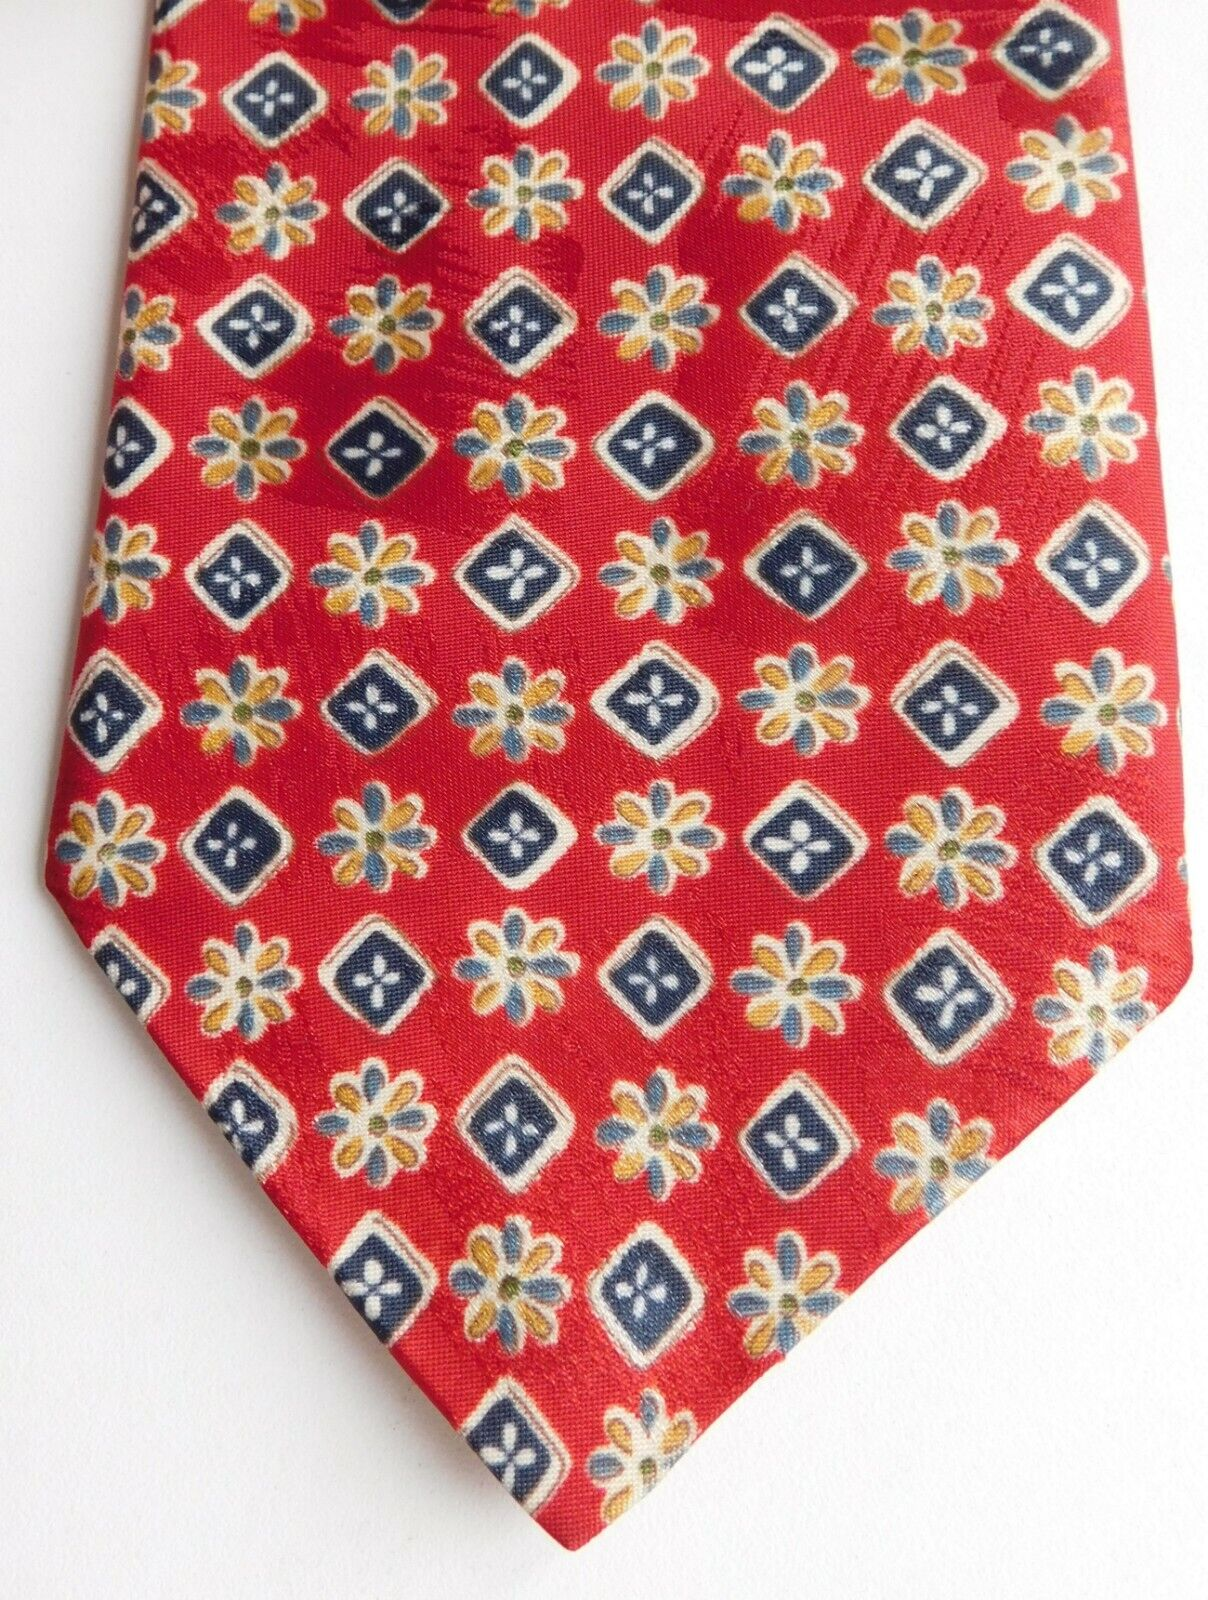 Charles Rose floral print tie machine washable red made in UK